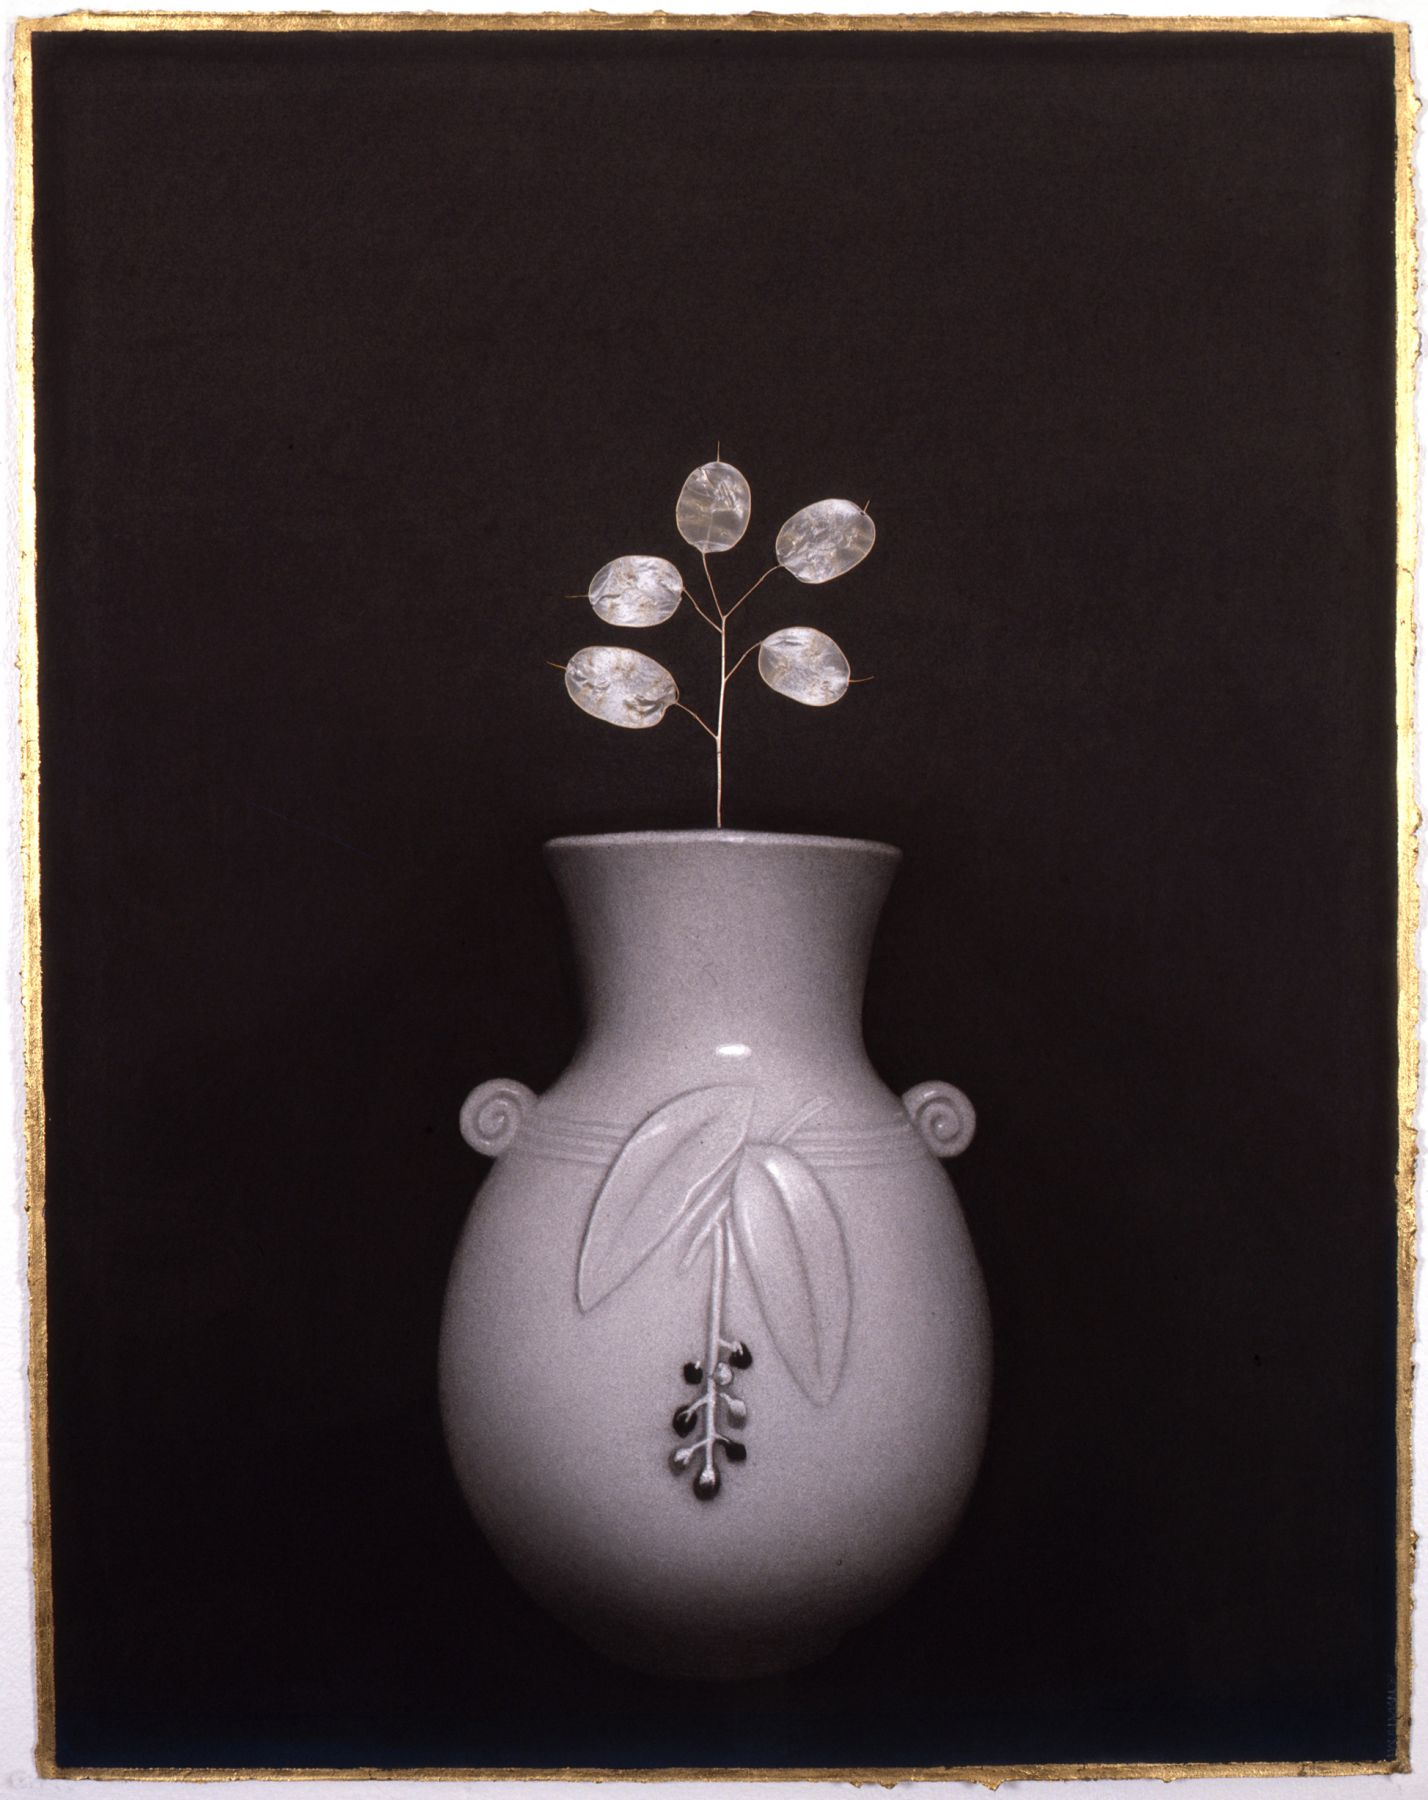 Susan Hauptman, Flowers (Lunaria), 2007, charcoal, gold leaf and lunaria on paper, 34 x 24 inches